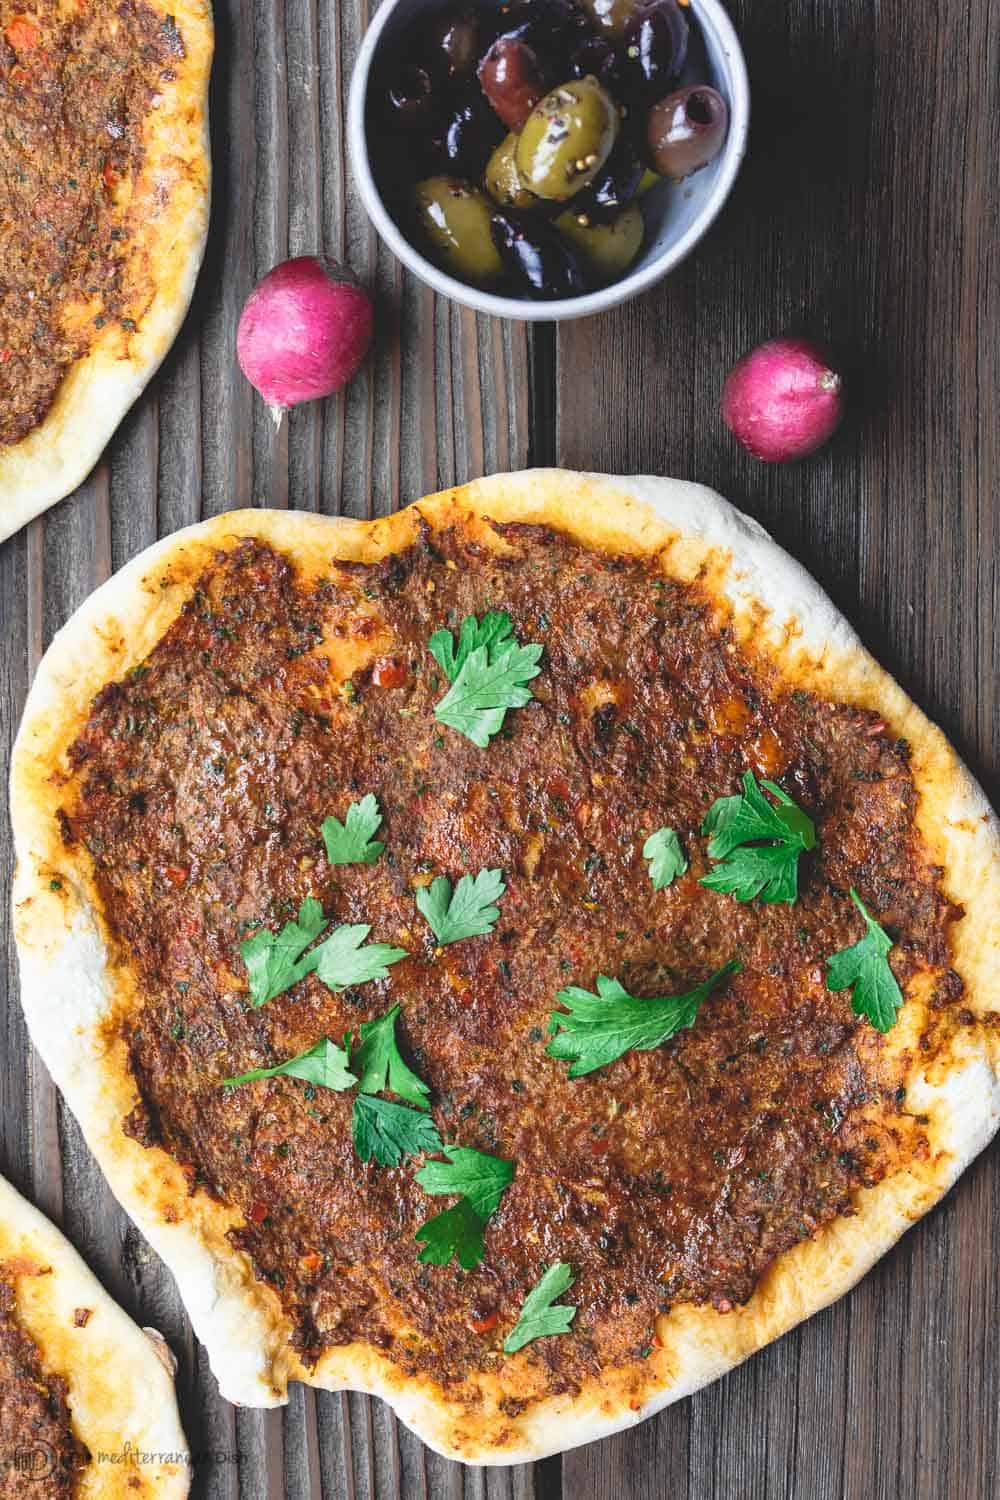 Turkish Lahmacun (Lamajoun). Flatbread with meat topping.